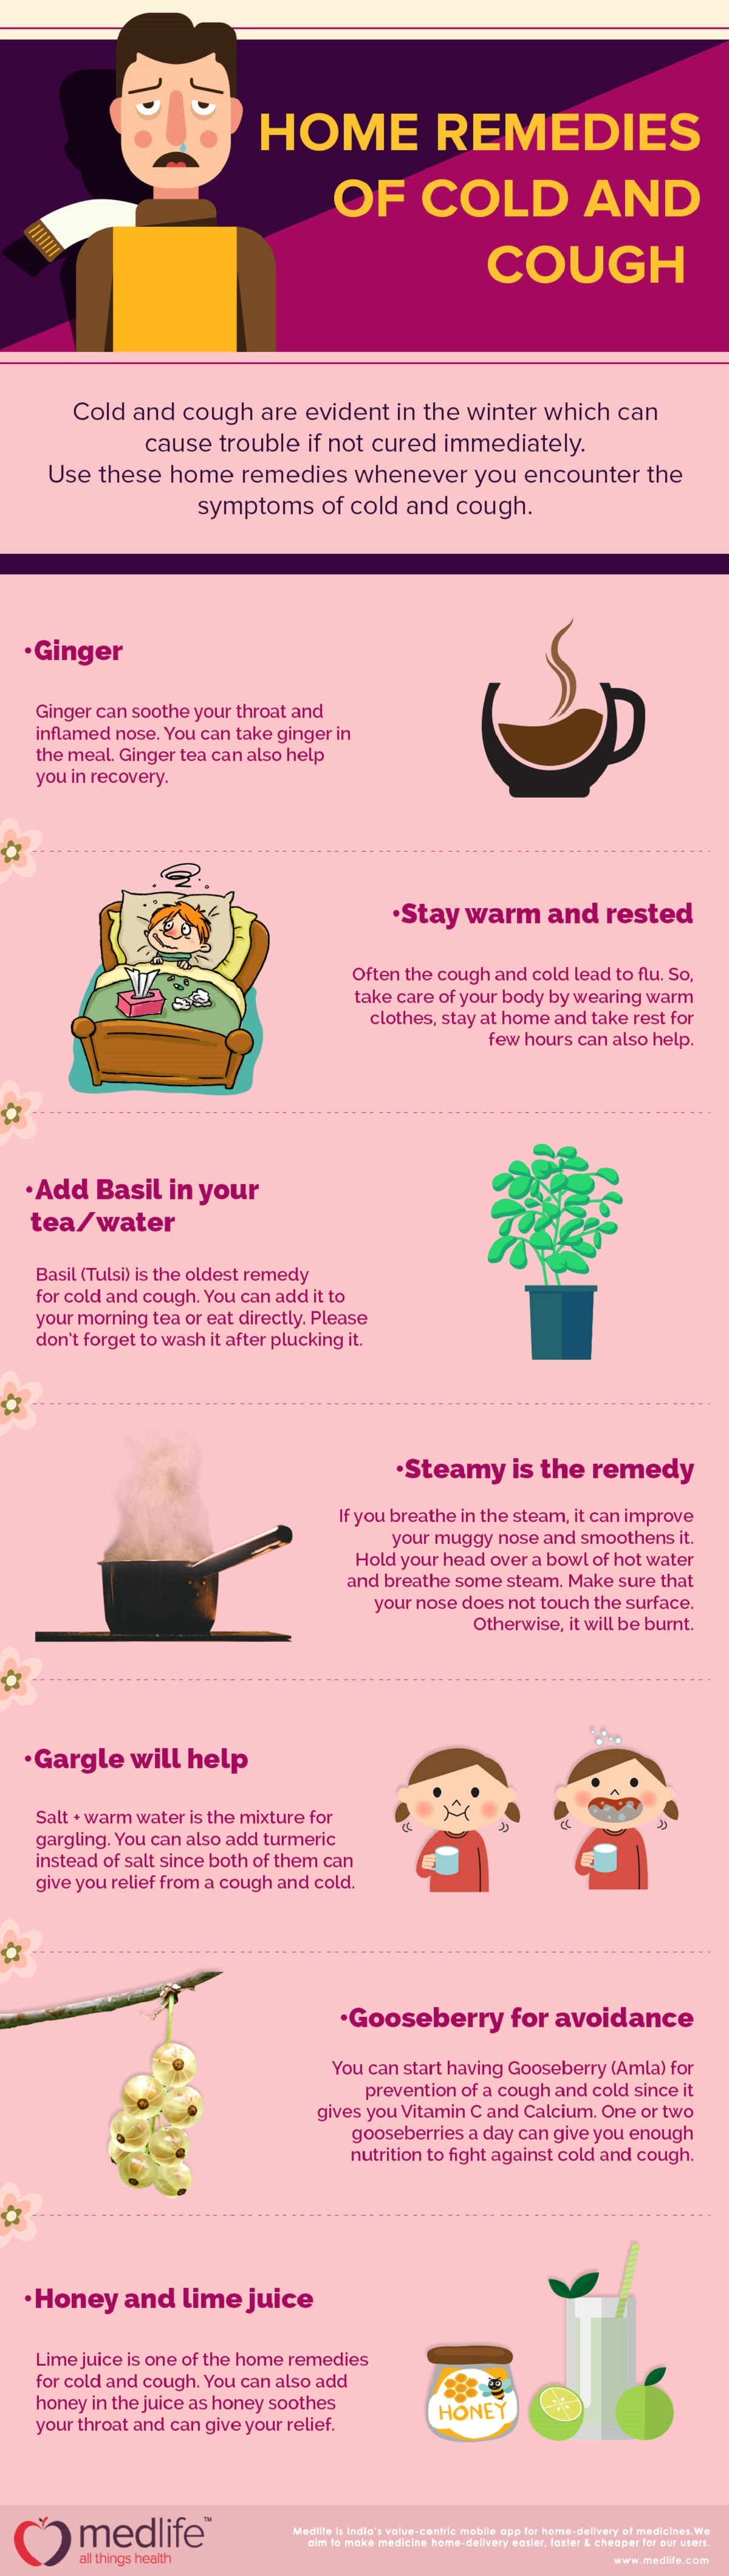 home-remedies-of-cold-and-cough-infographic